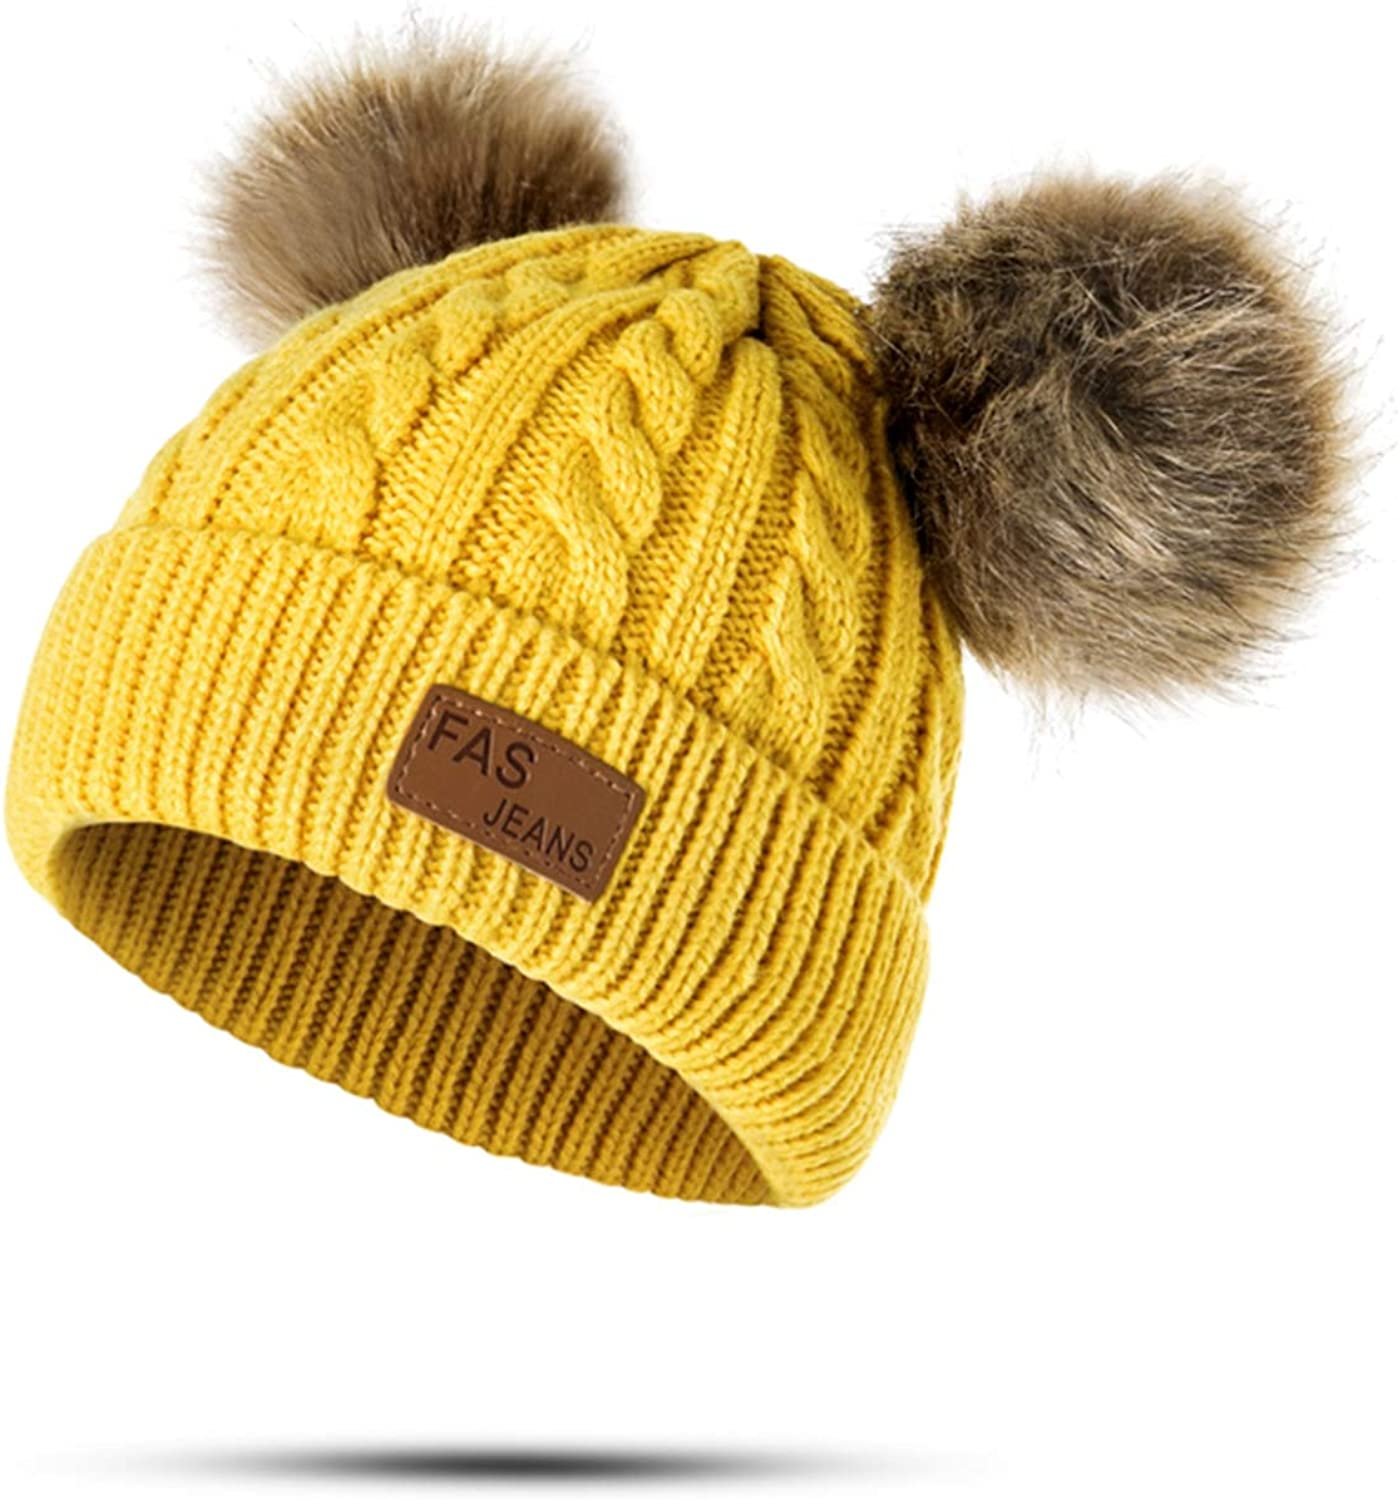 Ron Kite Winter Hat Pom Poms Hat Children Knitted Beanies Thick Baby Hat Infant Toddler Warm Cap